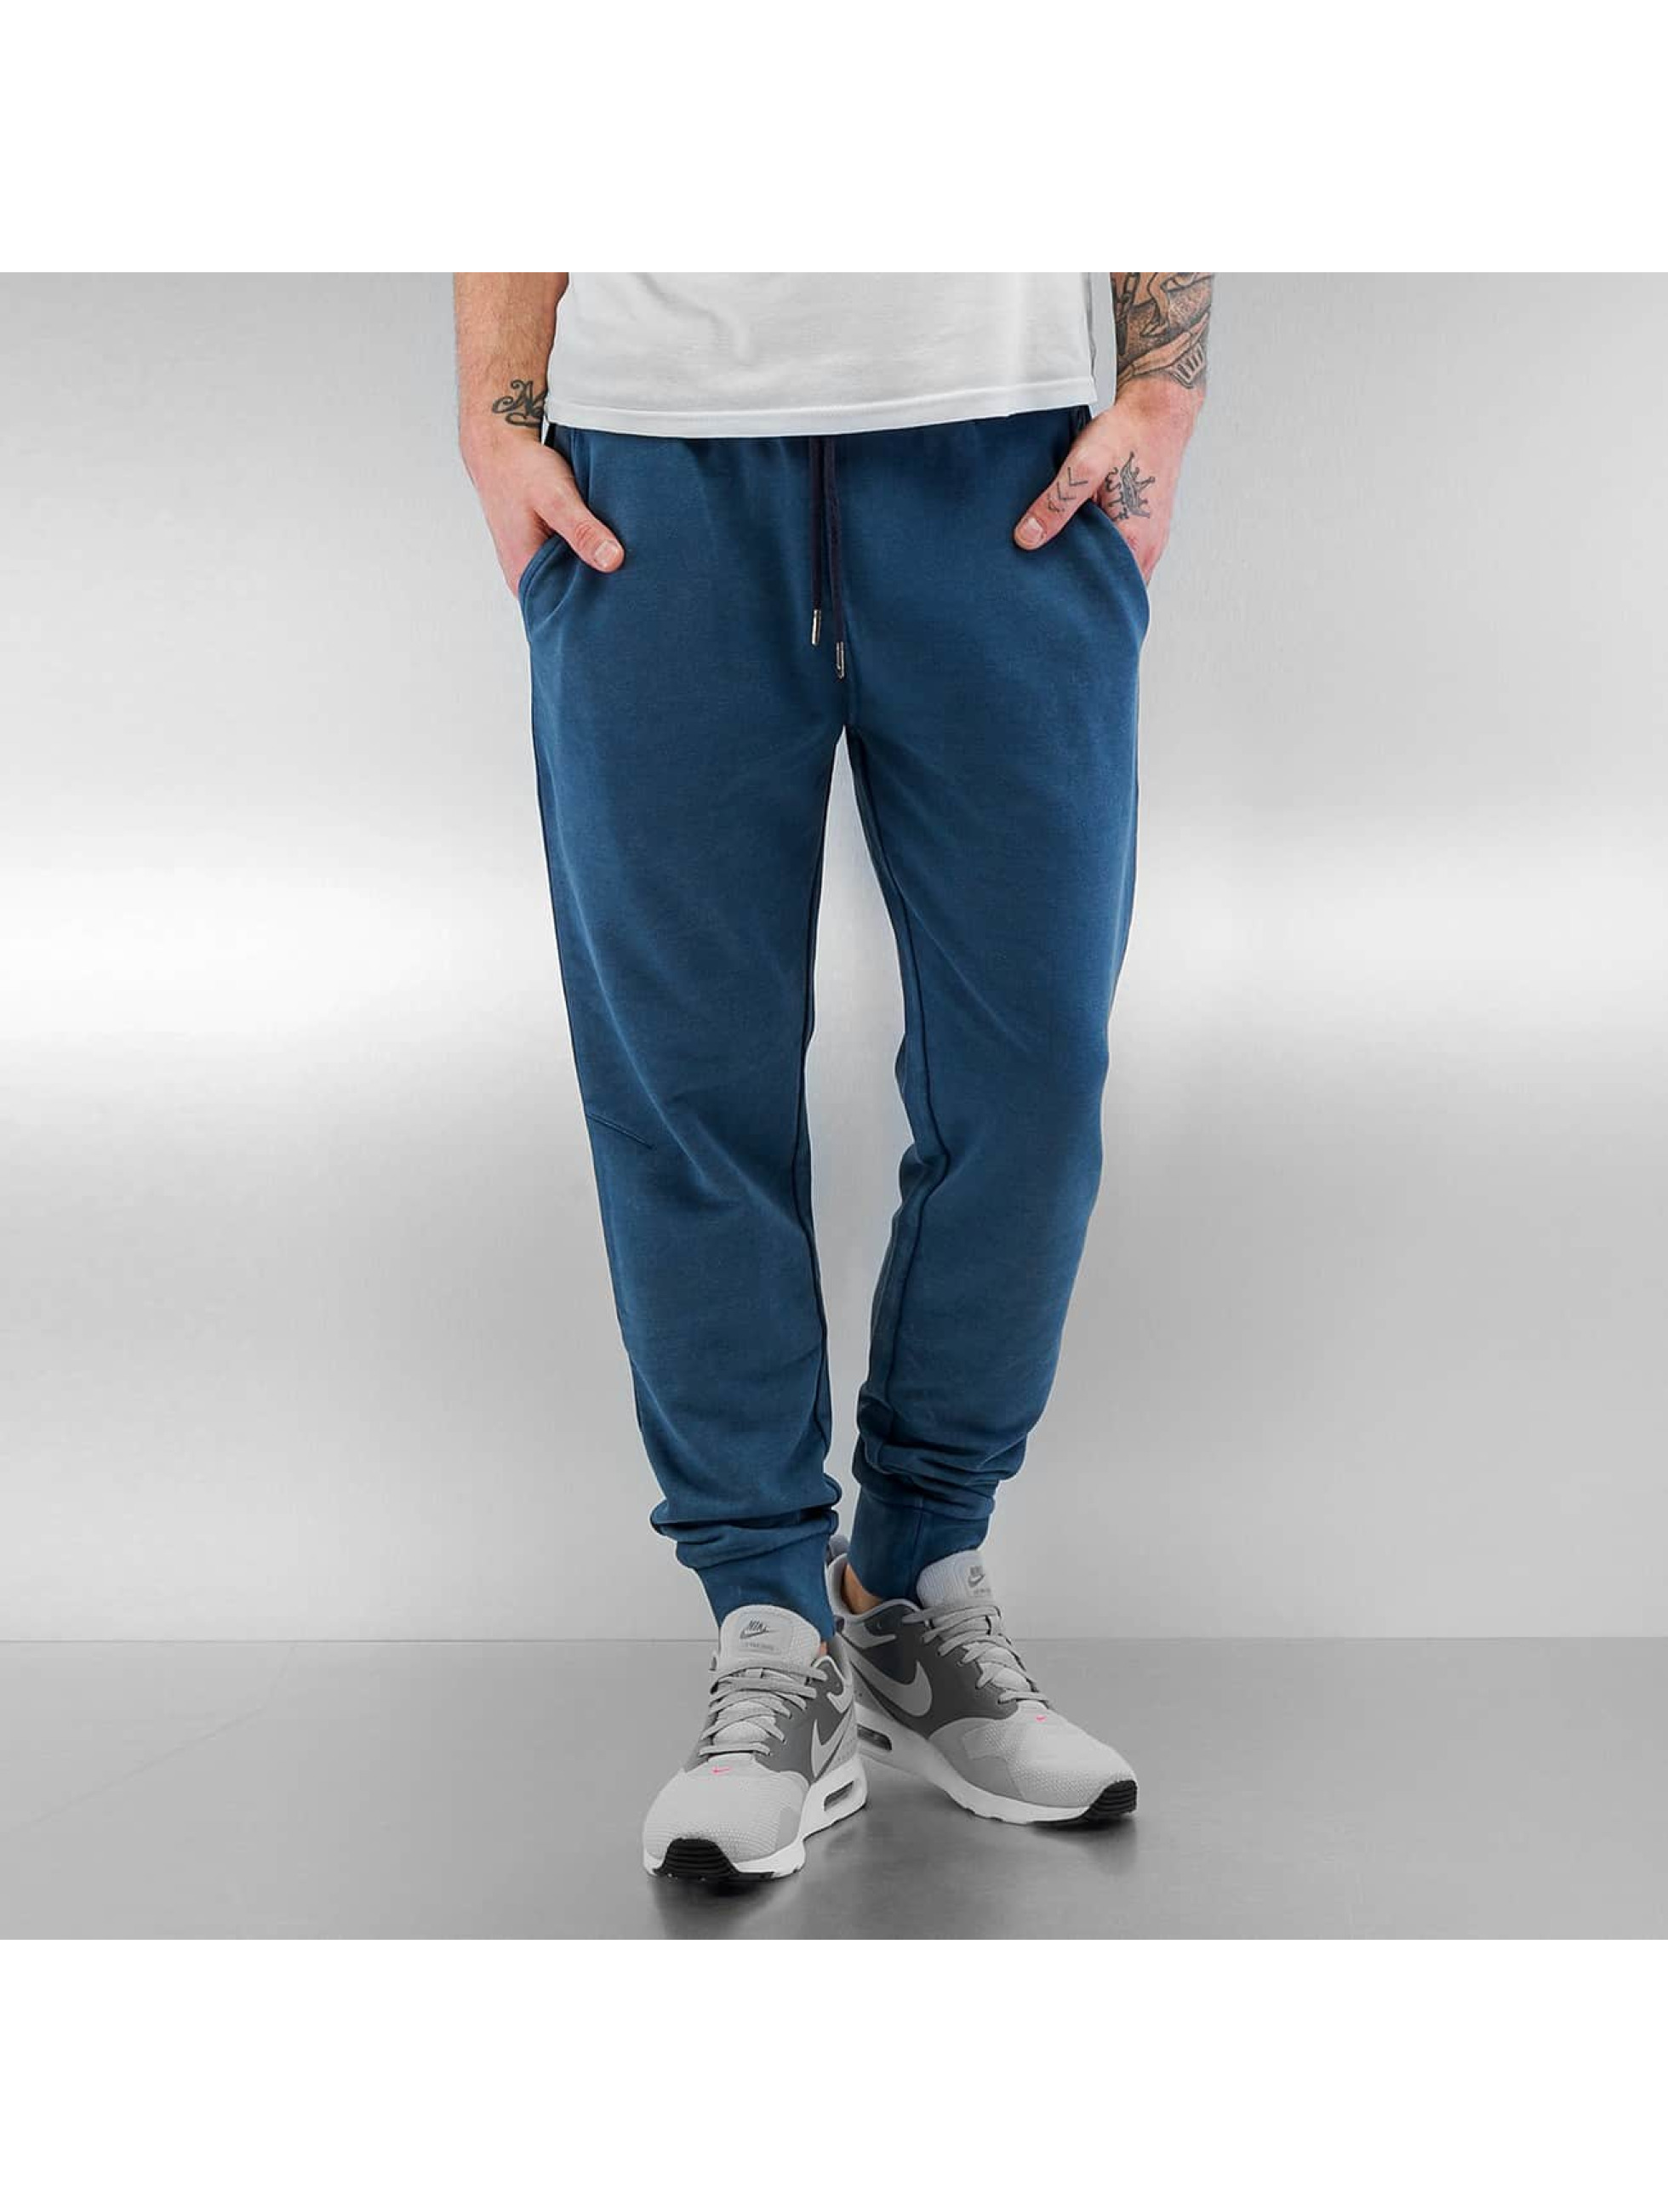 SHINE Original Männer Jogginghose Basic in blau